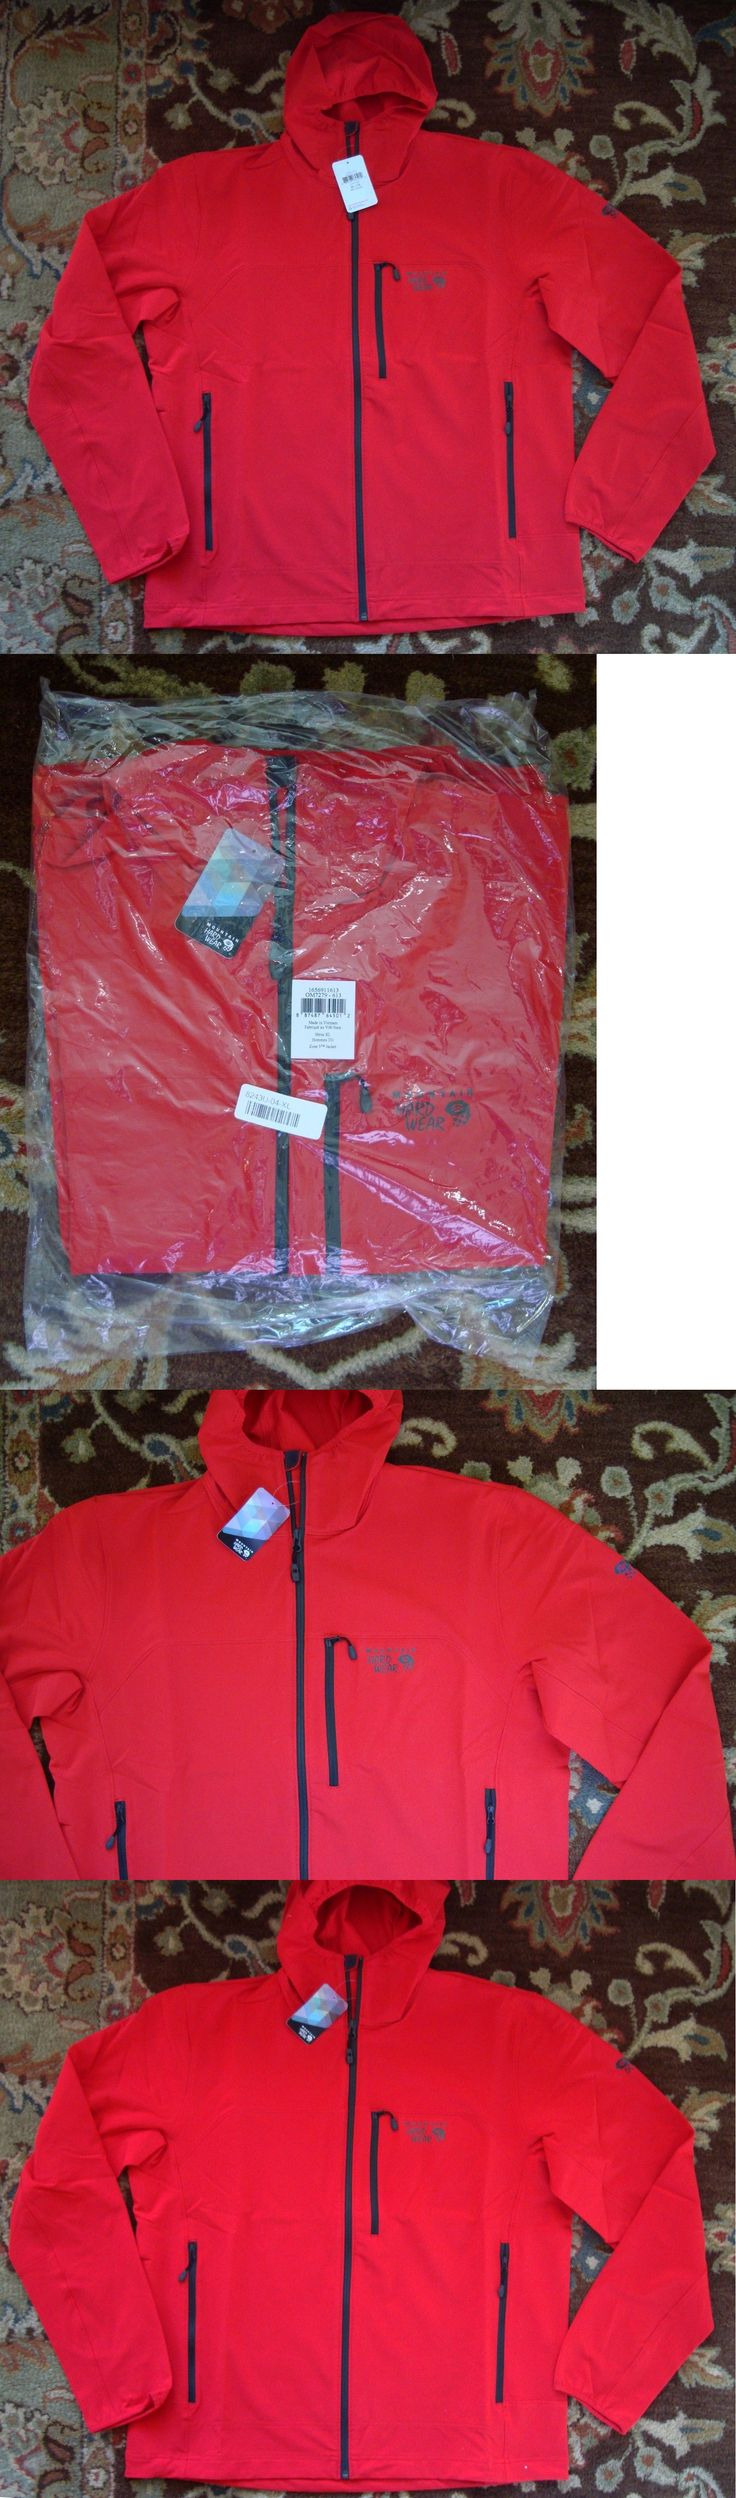 Coats and Jackets 26346: New Mountain Hardwear Mens Zone 5 Soft Shell Lightweight Jacket Xl Red $100 -> BUY IT NOW ONLY: $51.95 on eBay!